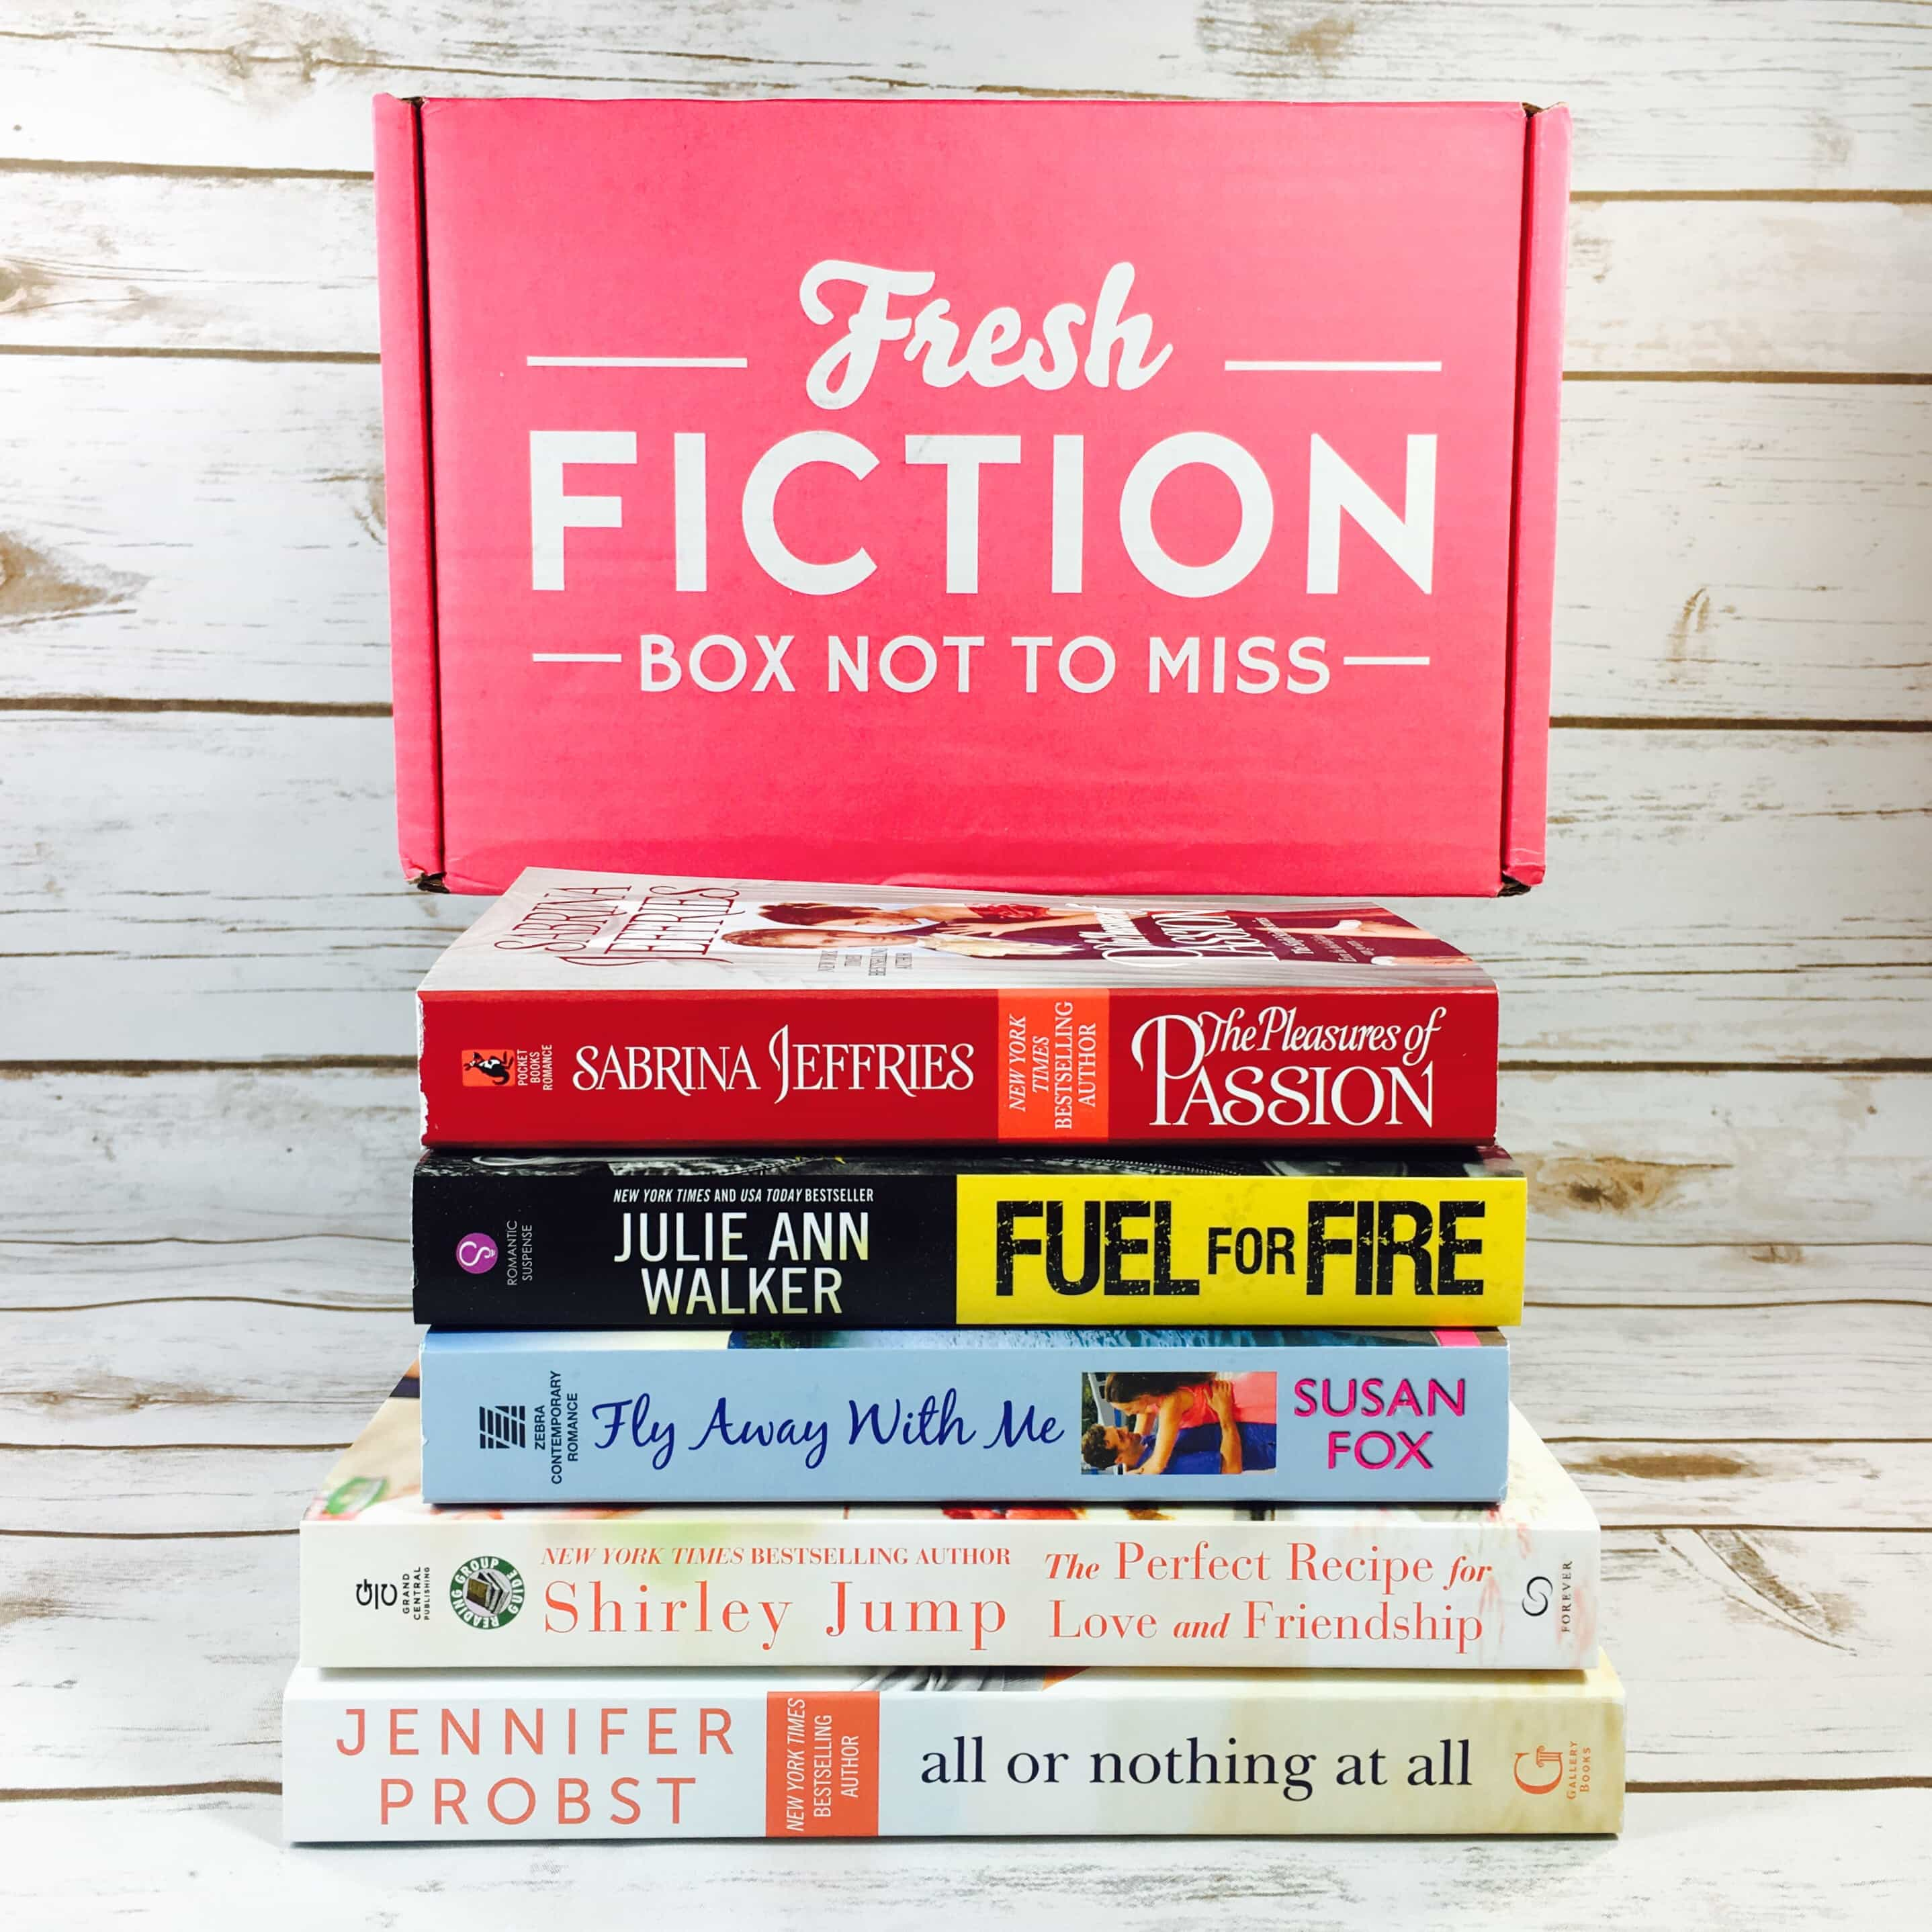 Fresh Fiction Box August 2017 Subscription Box Review + Coupon